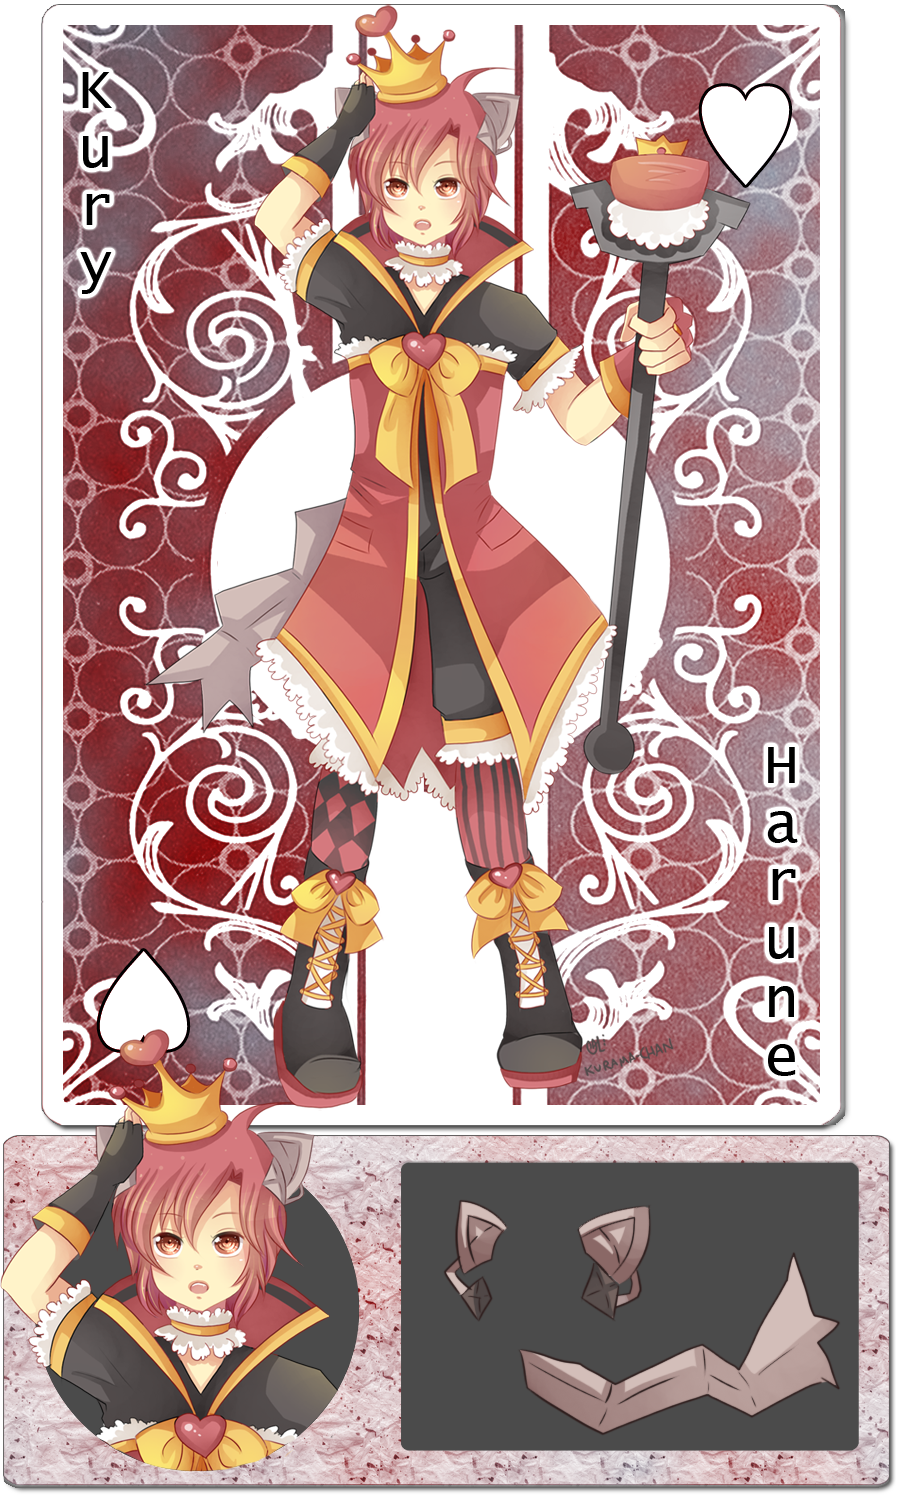 -- Vorpal Sonata: King of Hearts Kury -- by Kurama-chan